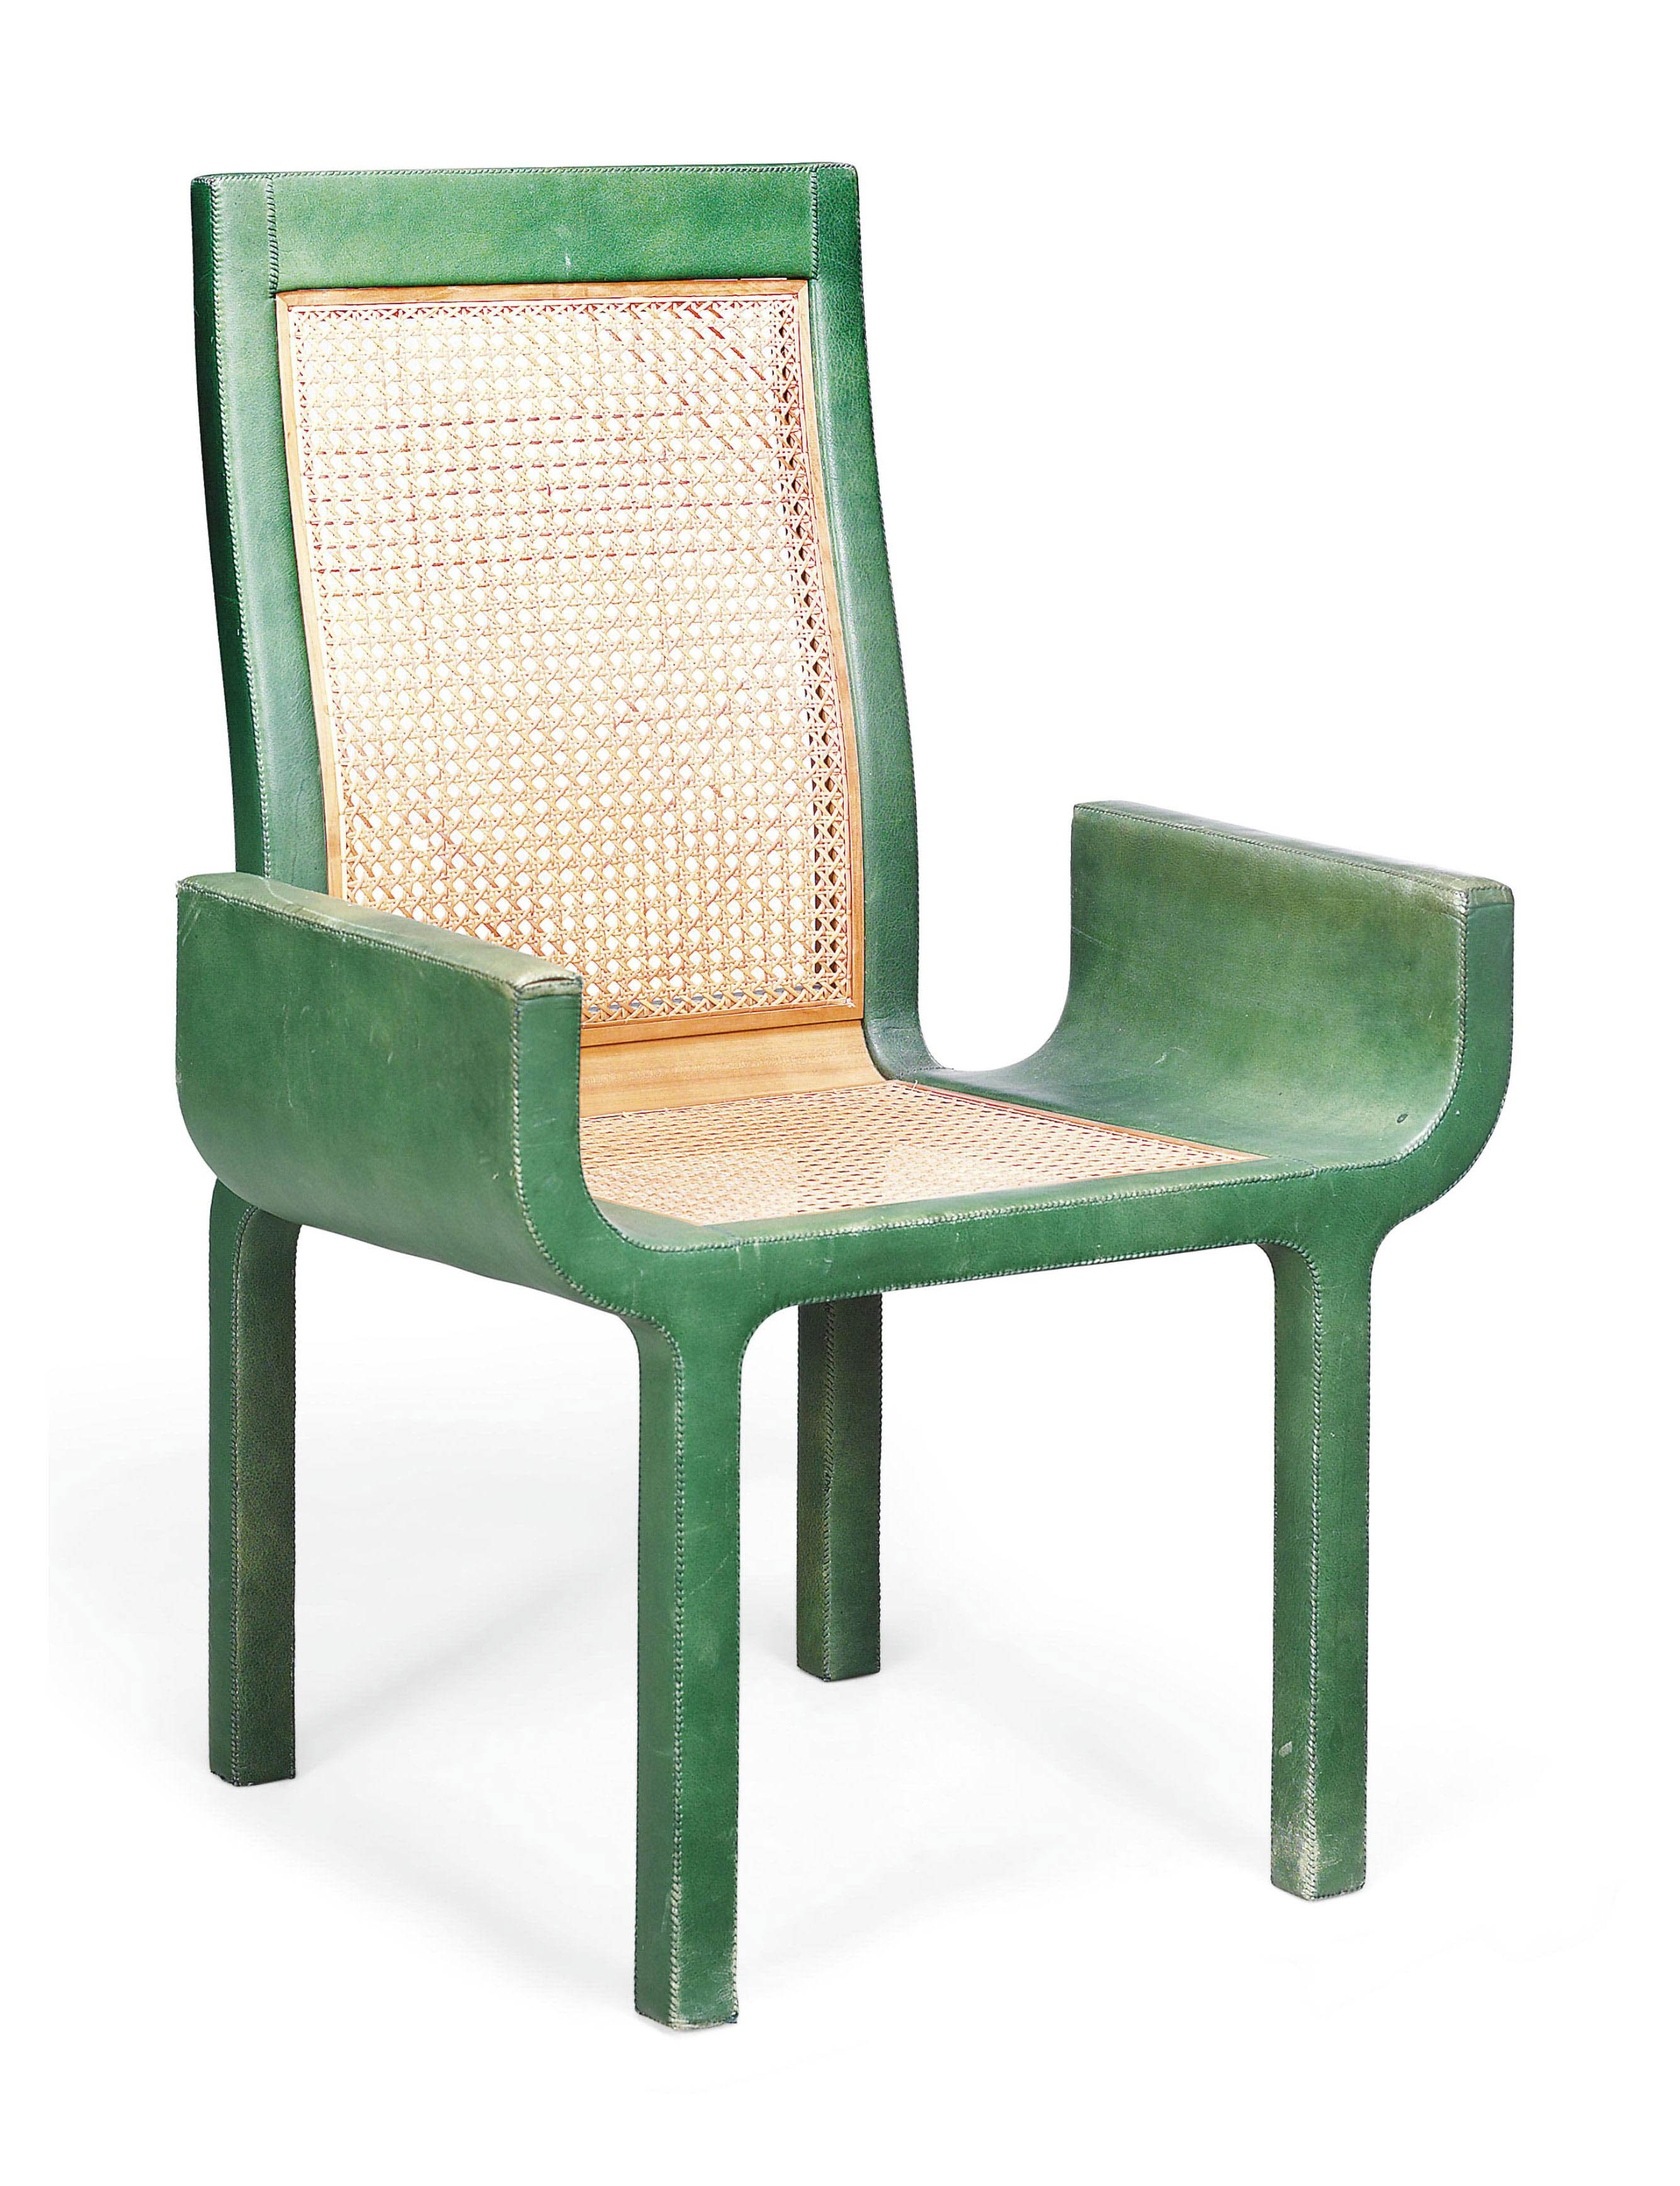 A GREEN LEATHER-COVERED ARMCHAIR